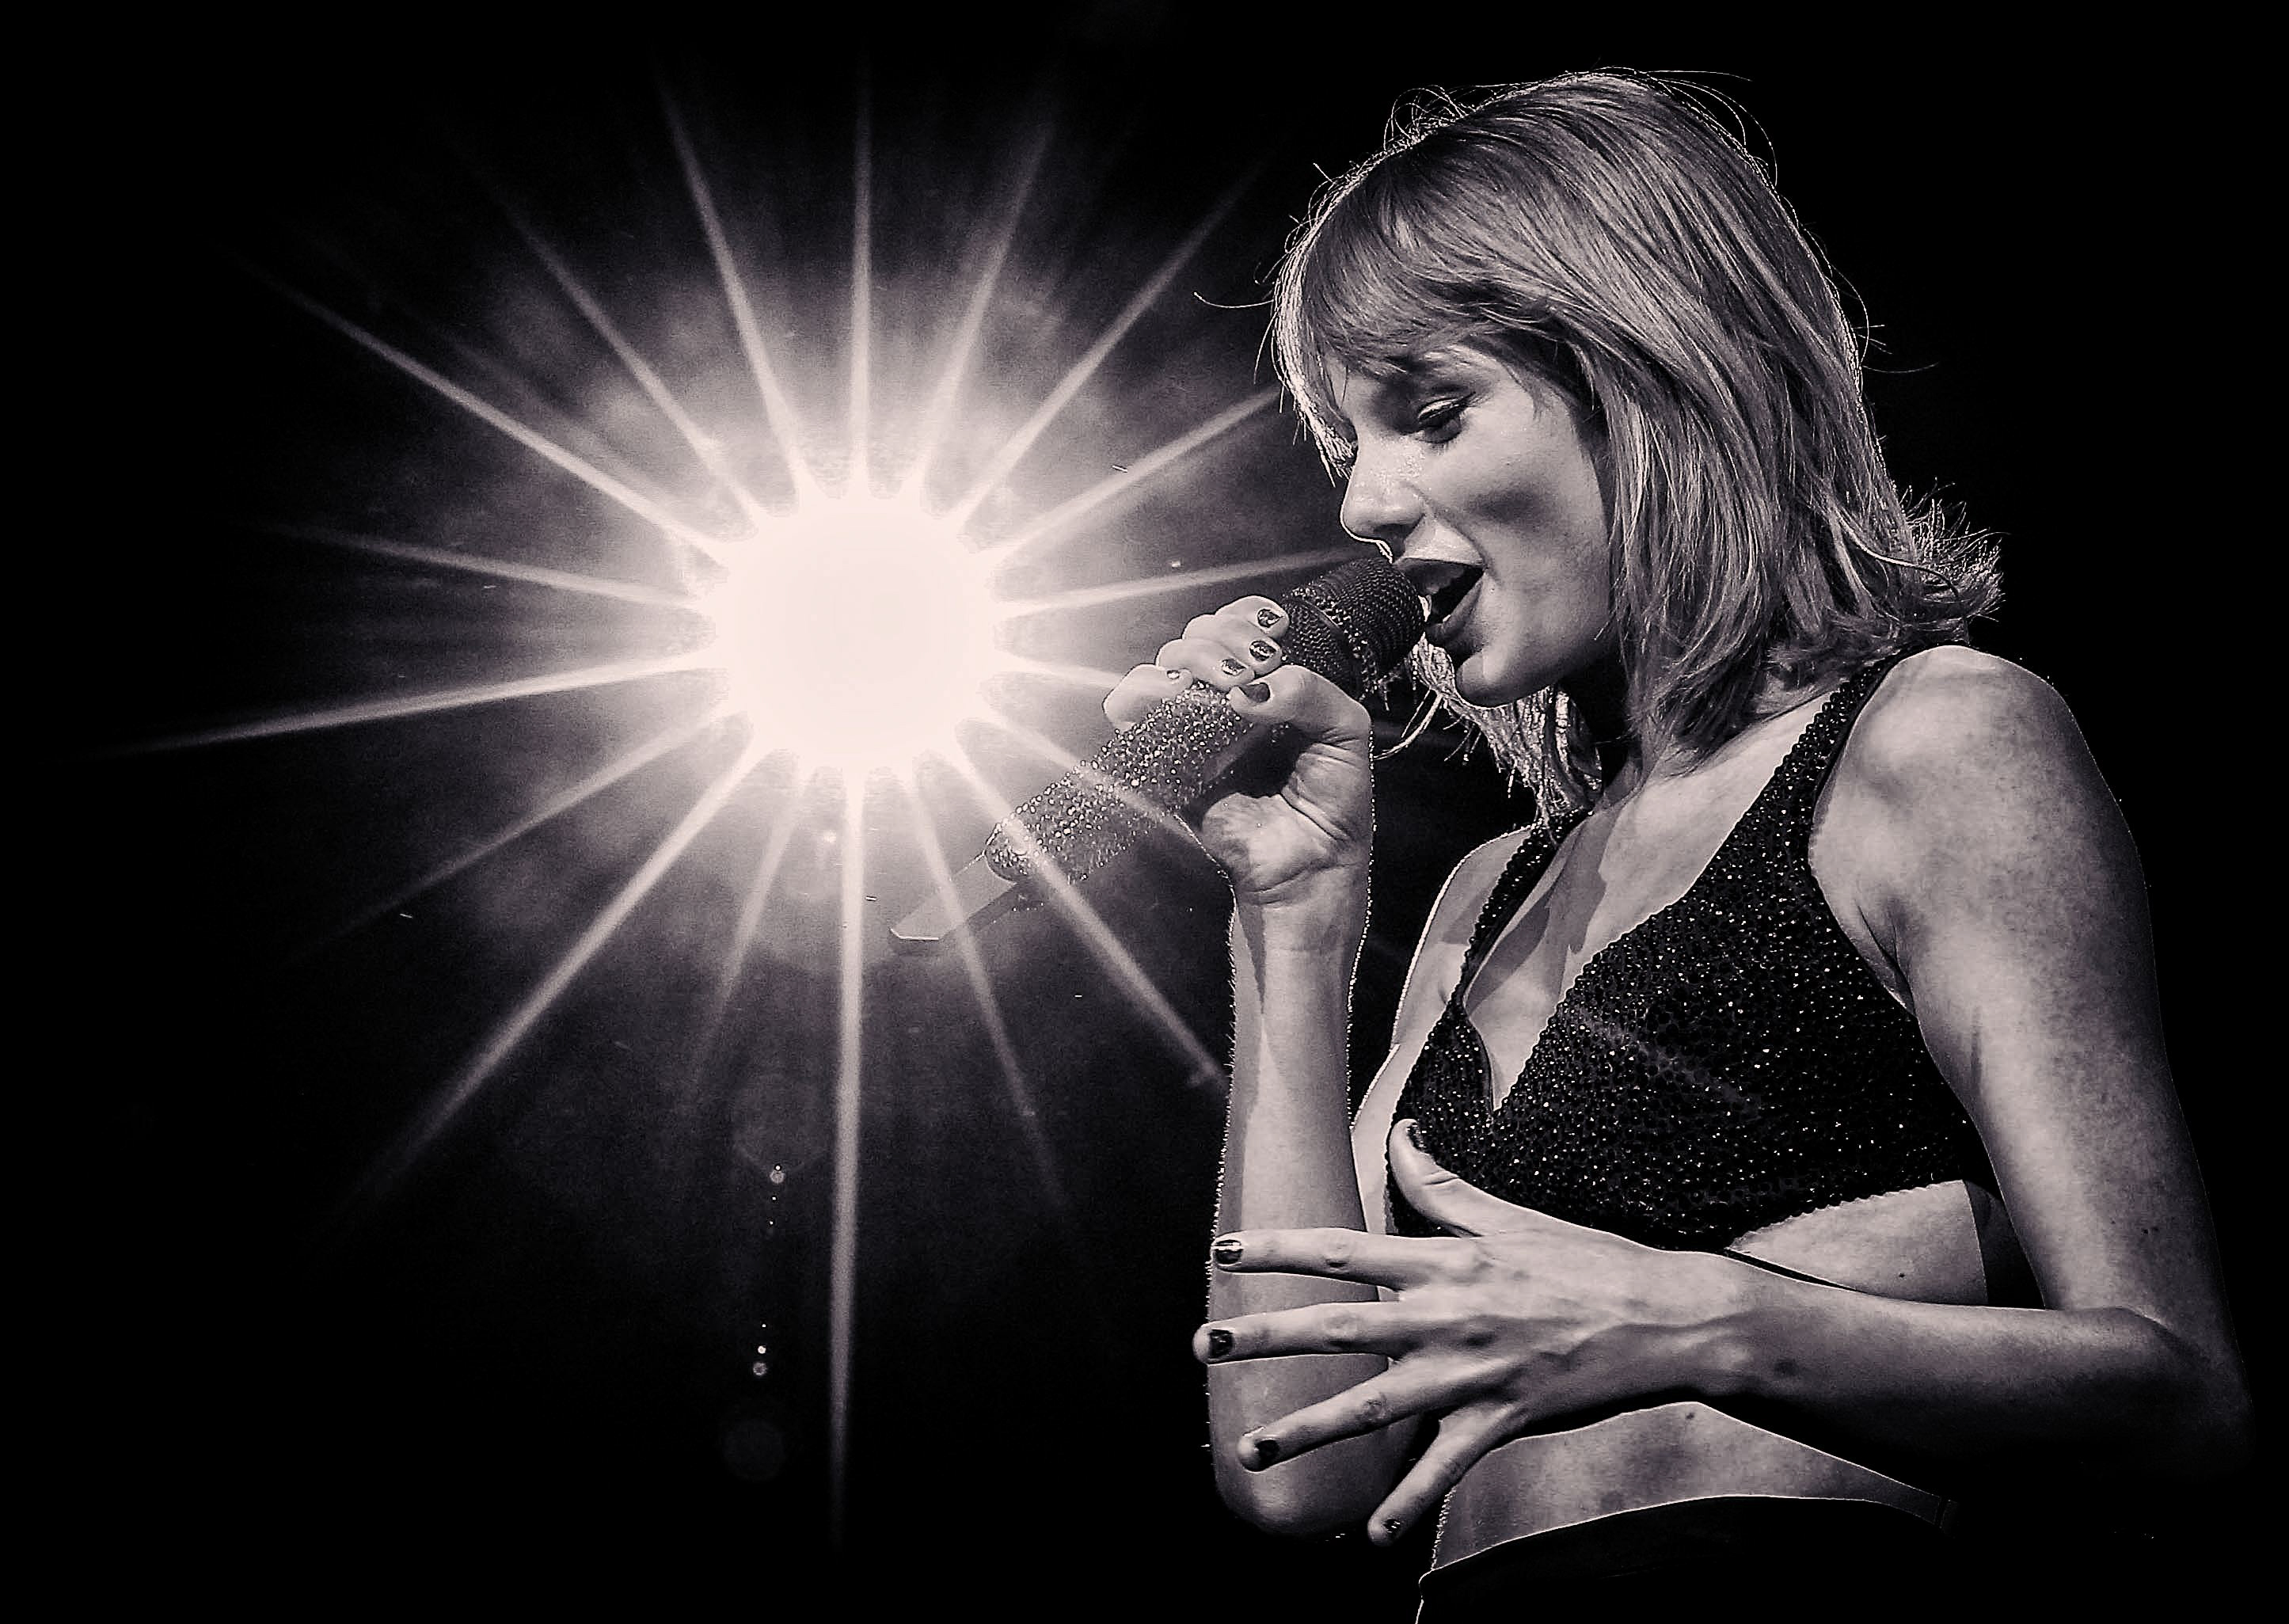 (EDITORS NOTE: This image has been altered digitally) Singer-songwriter Taylor Swift onstage during The 1989 World Tour Live In Los Angeles at Staples Center on August 21, 2015 in Los Angeles, California.